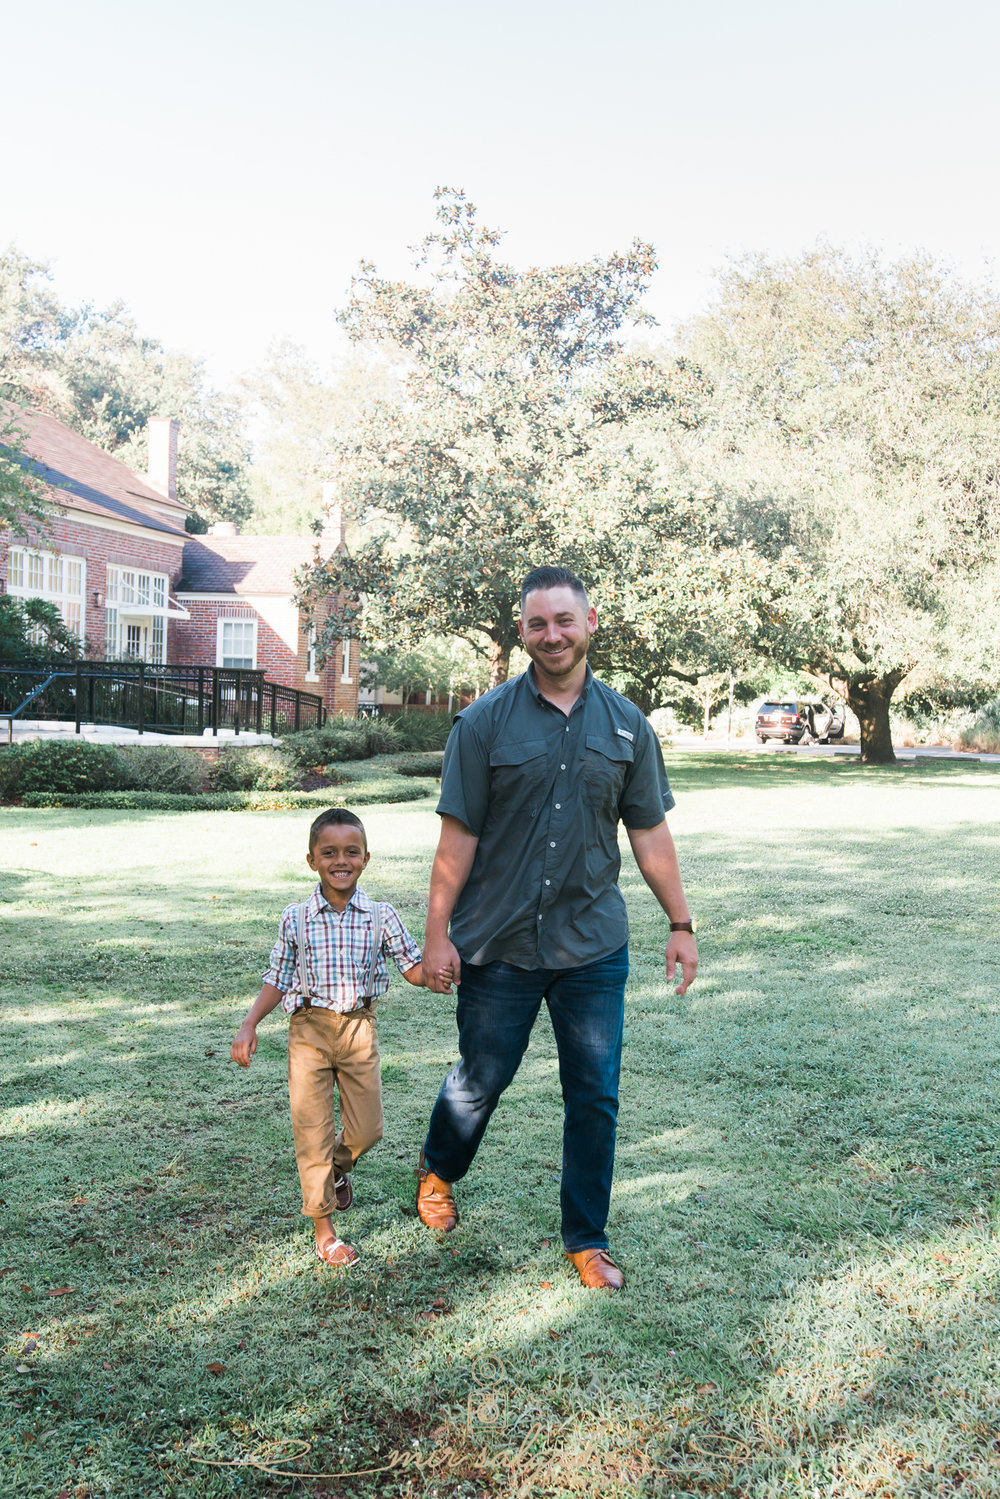 Seminole-heights-garden-club-session, Tampa-family-session